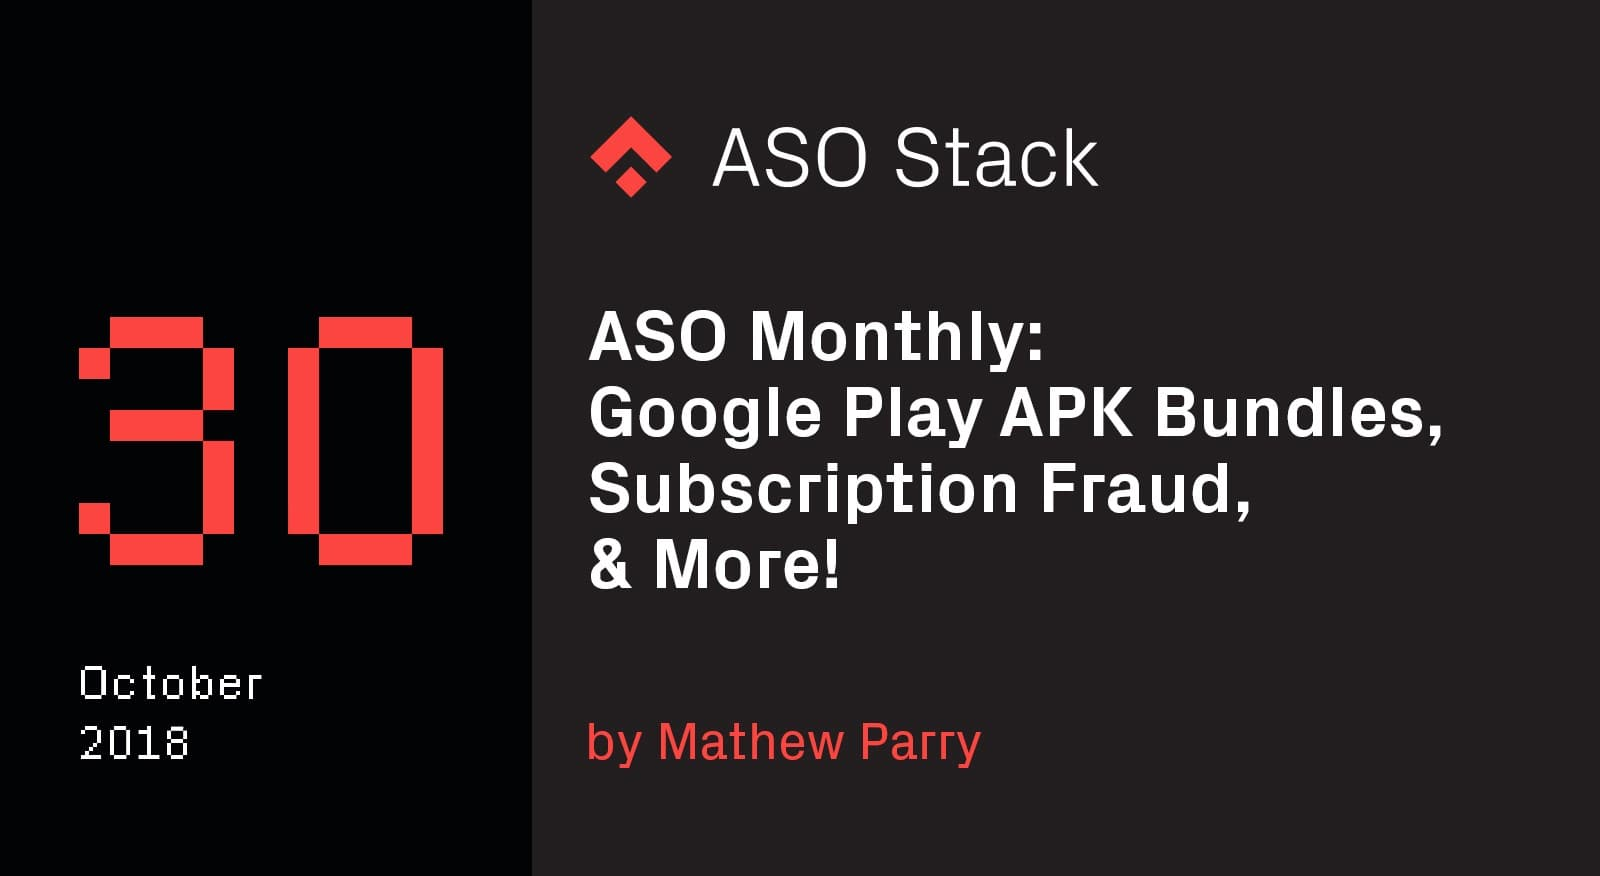 ASO-Monthly-30-October-2018-Google-Play-APK-Bundles-Subscription-Fraud-More-min